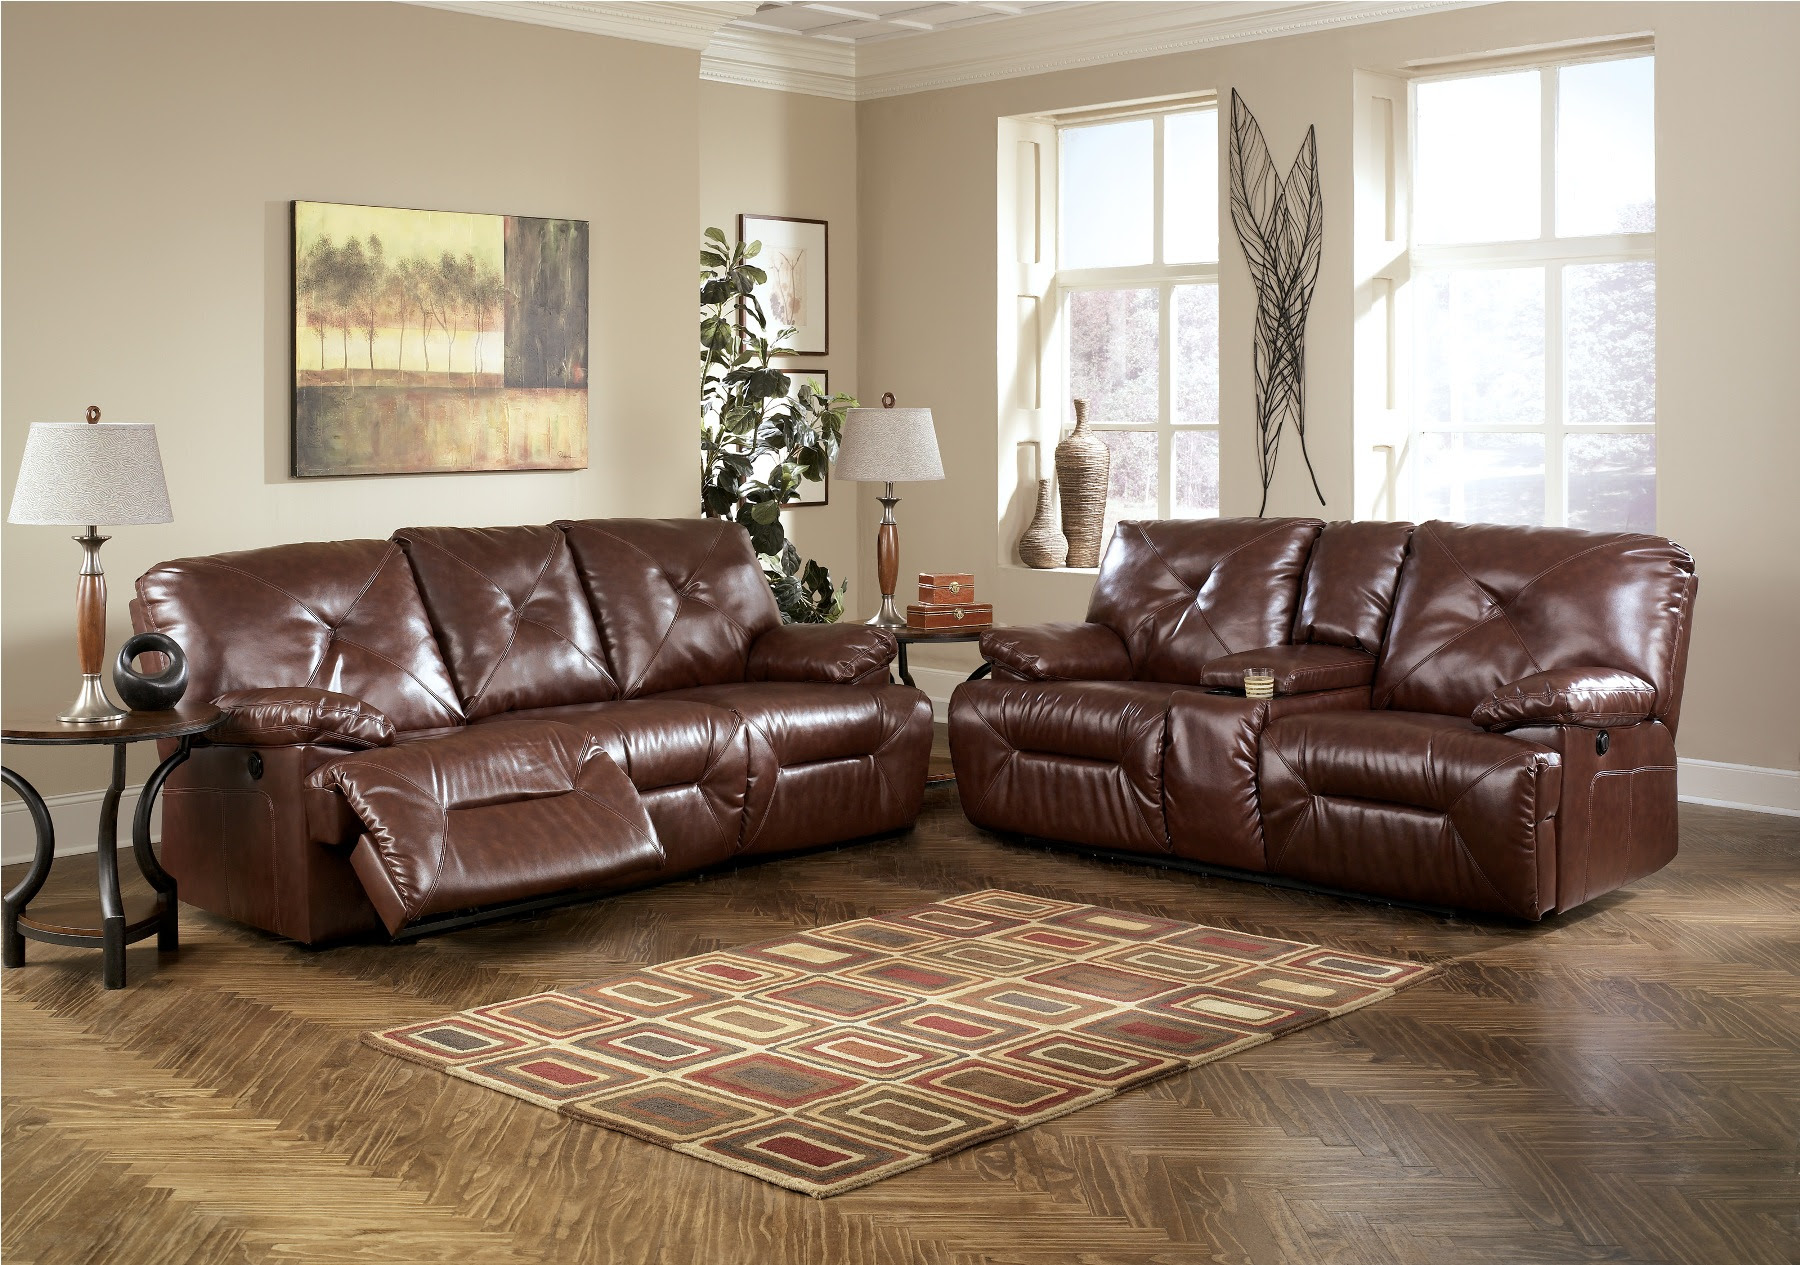 Furniture > Living Room Furniture > Living Room Set > Sienna ...